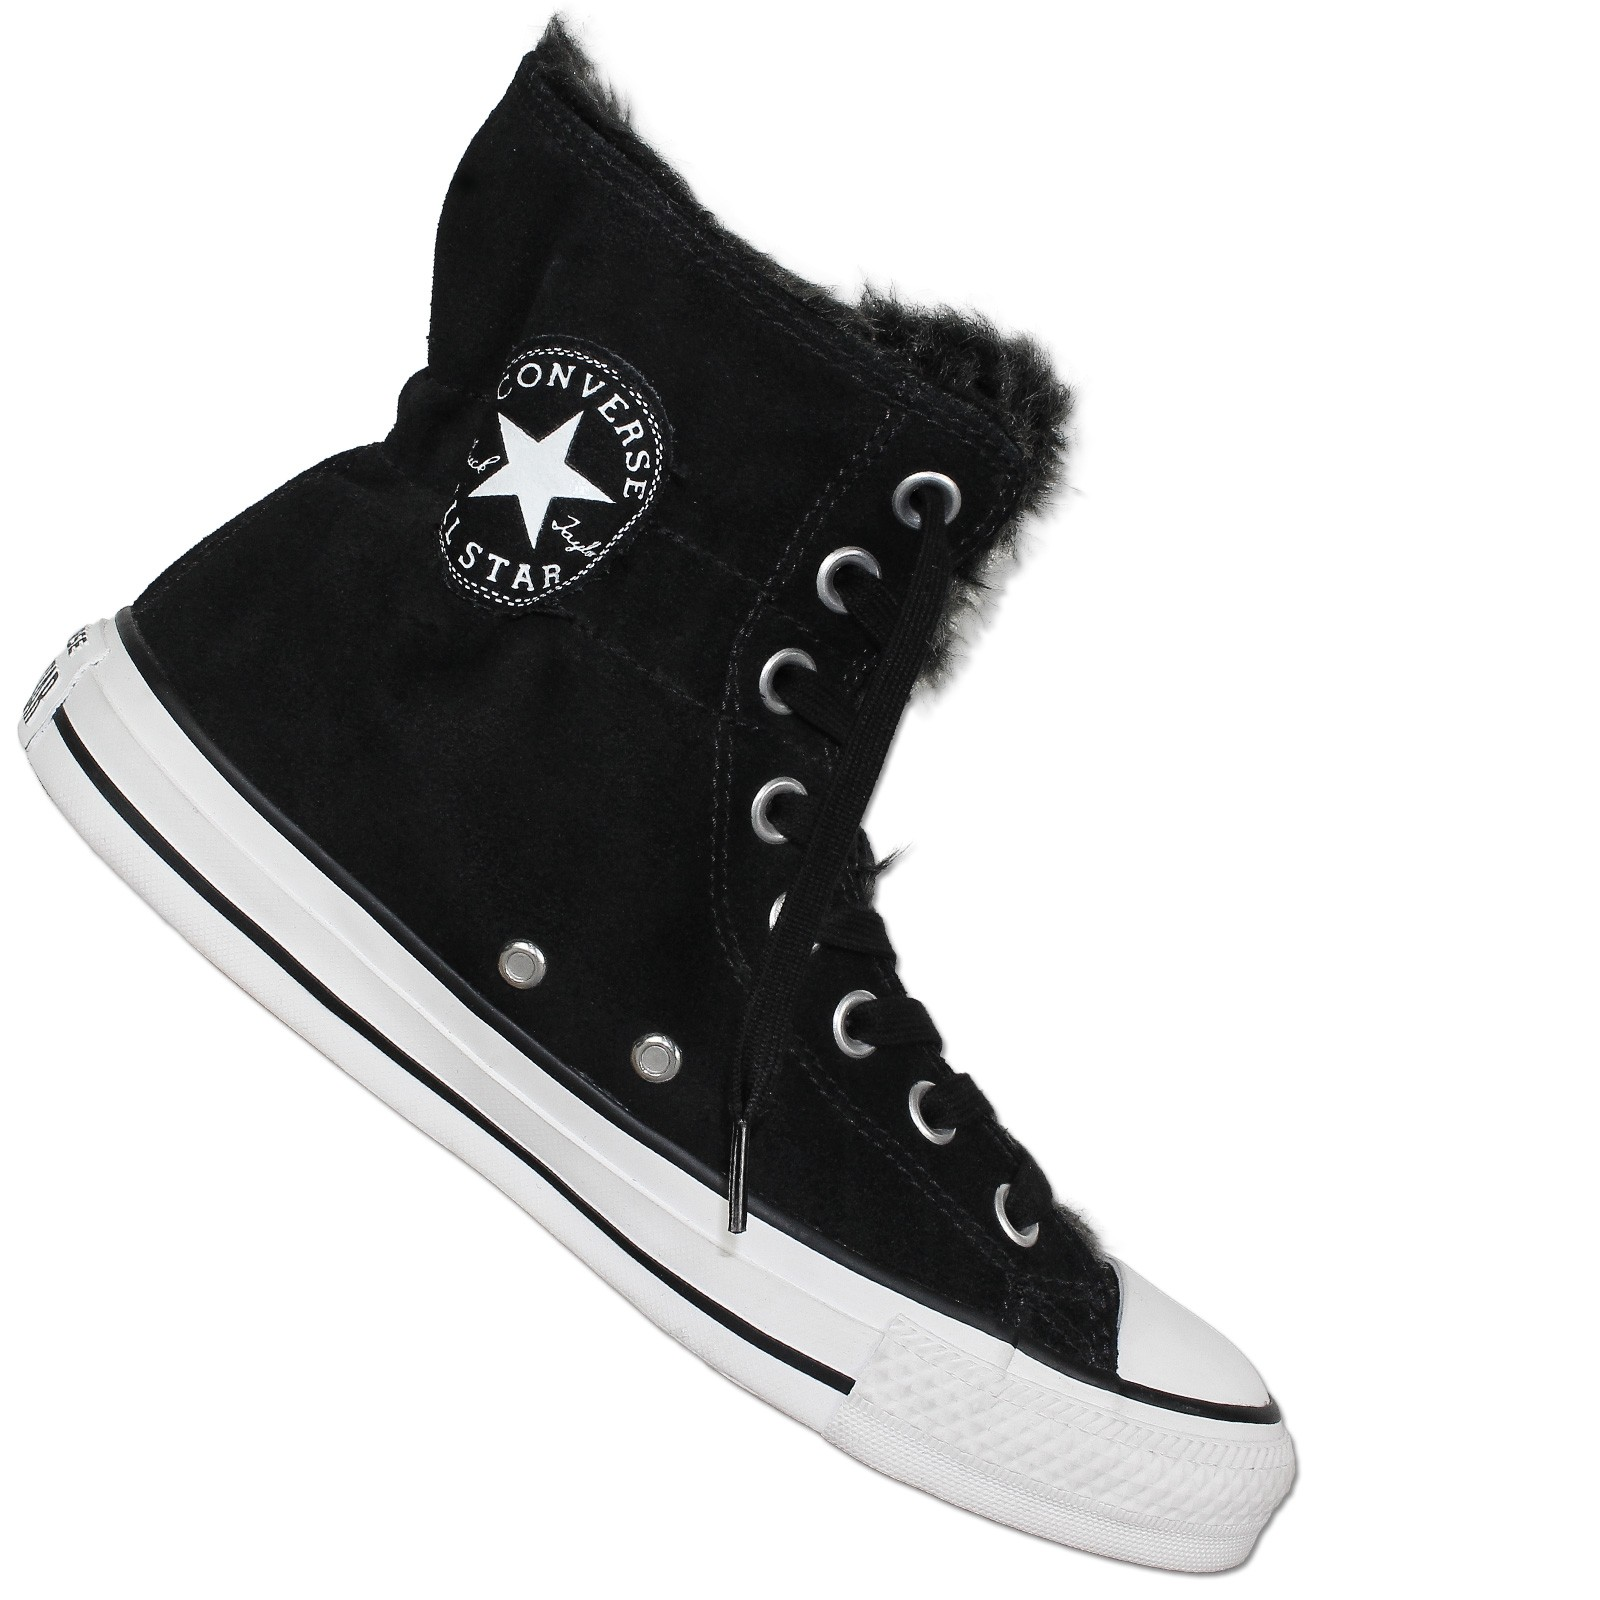 huge selection of 68514 b0caf CONVERSE ALL STAR CHUCK TAYLOR CT CLR SCRUNCH HI SCHWARZ WINTER SCHUHE  GEFÜTTERT